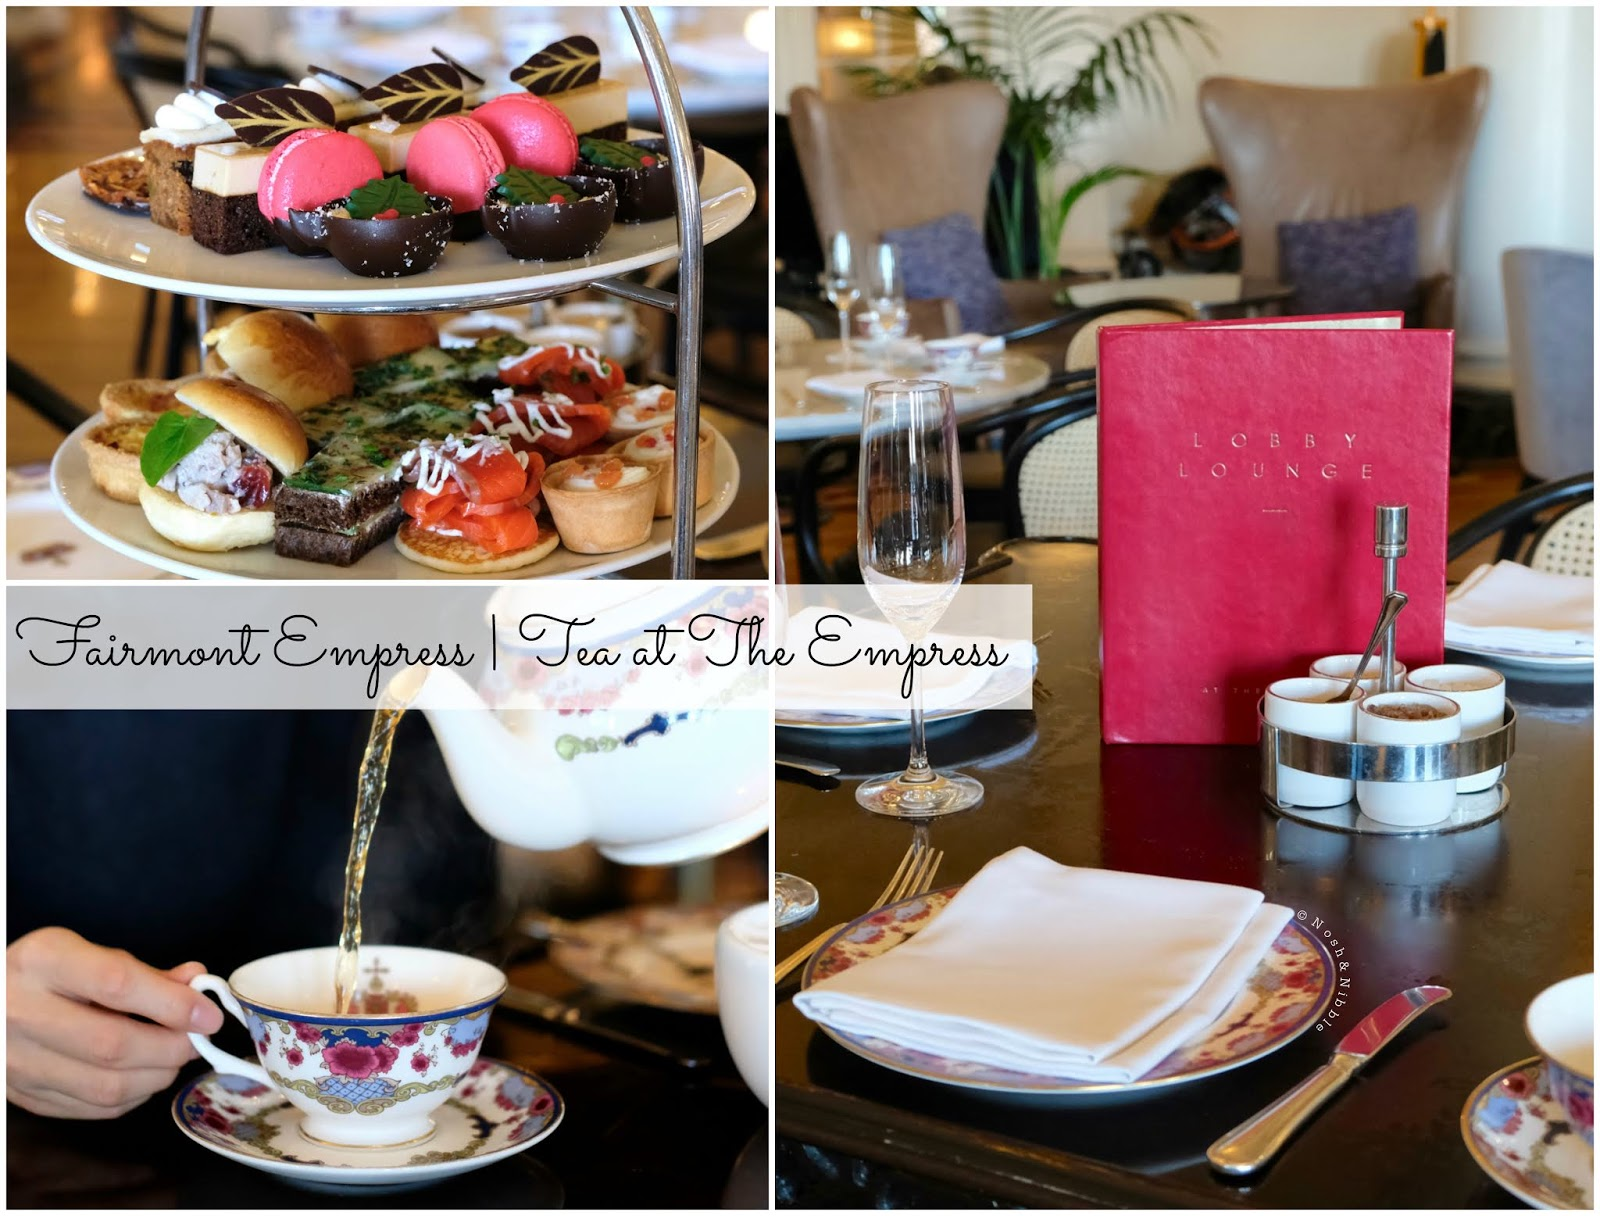 Fairmont Empress | Tea at The Empress Review